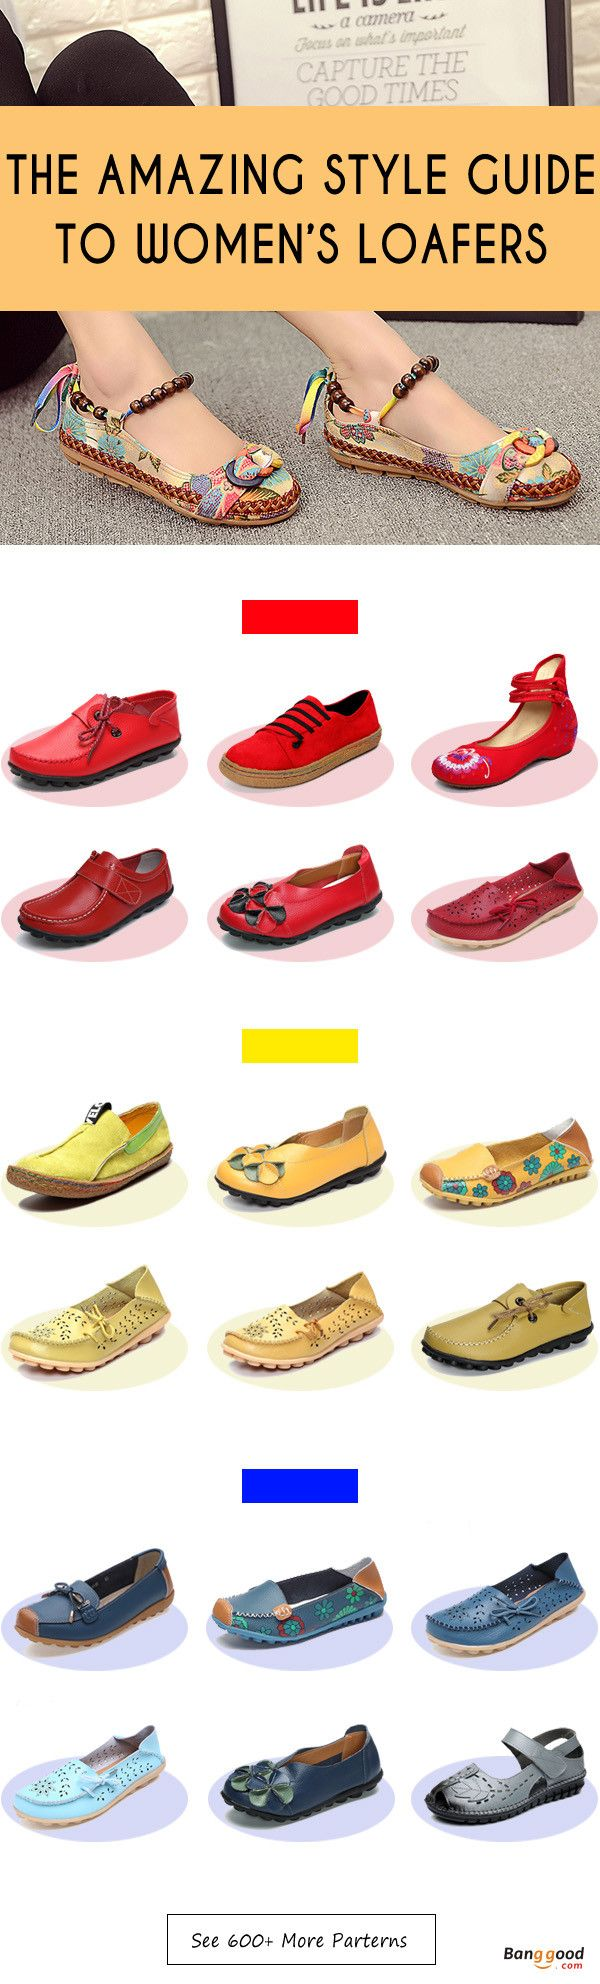 Women's Flats and Loafers Collection, Start From $9.9, Shop with fun! Women's Shoes, Women's Fashion, Flats and Loafers.